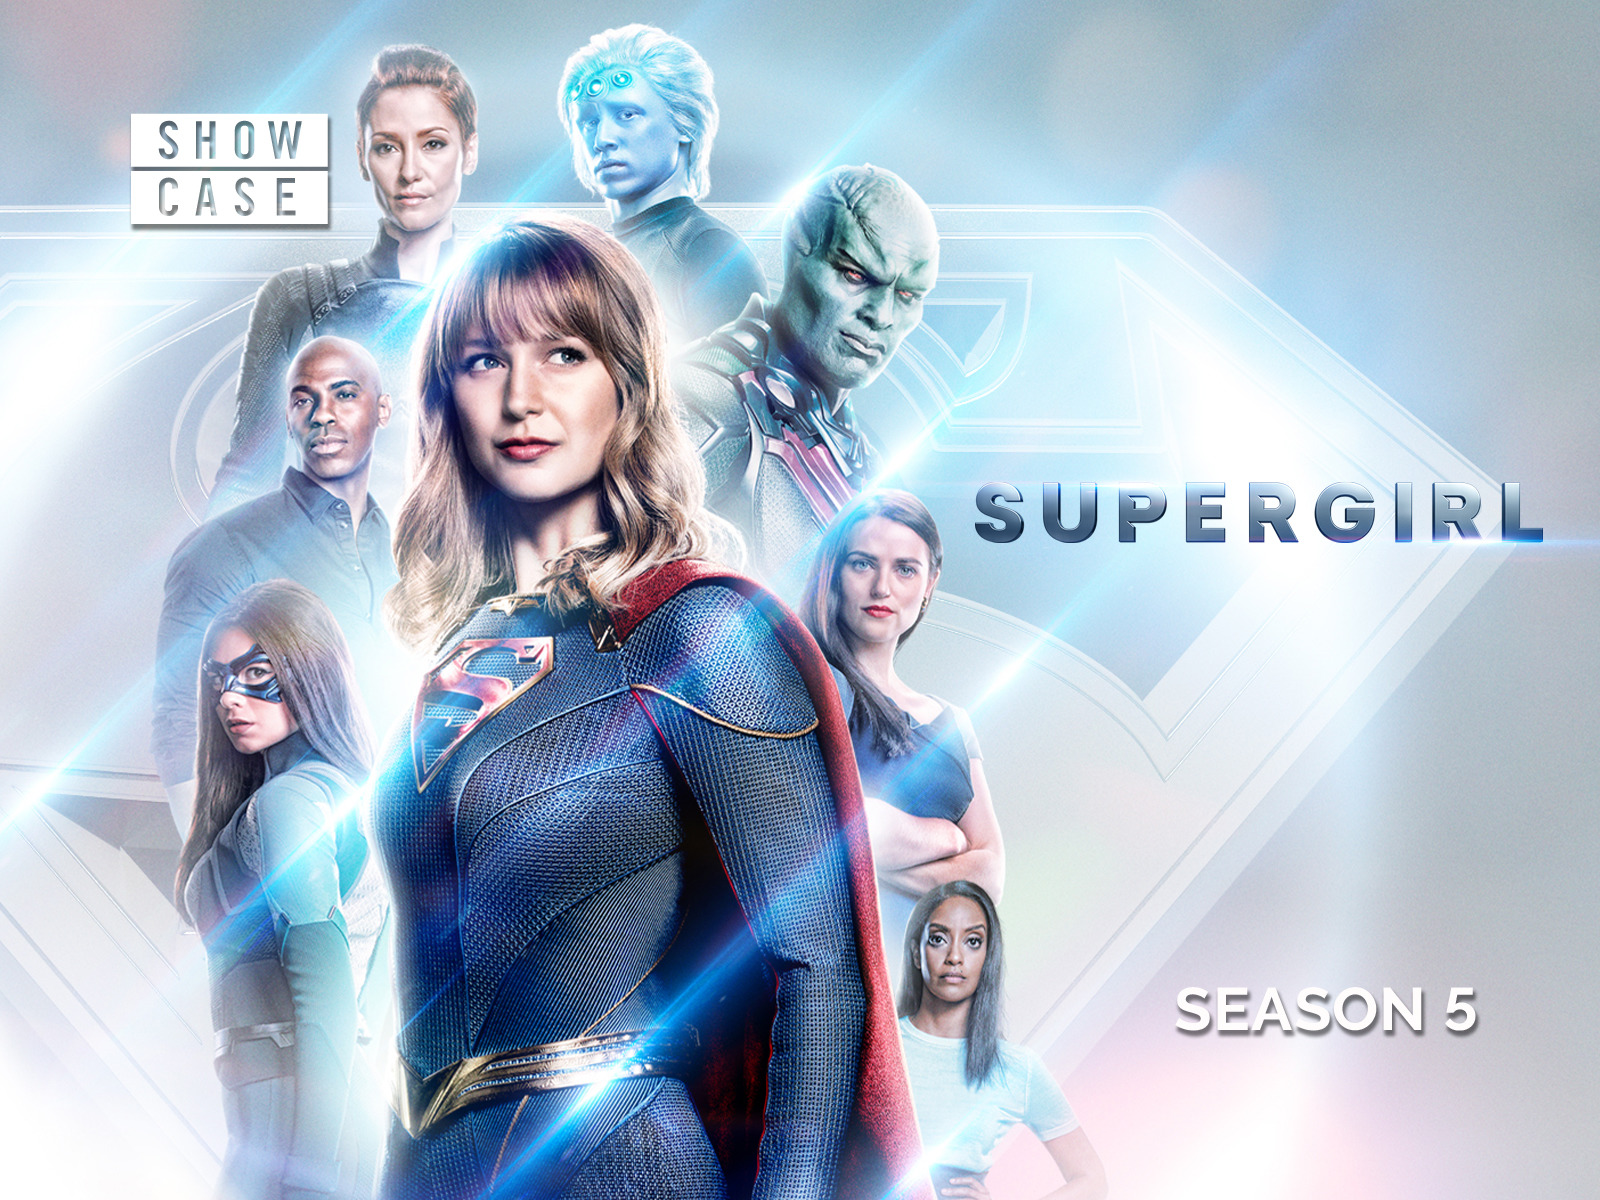 Prime Video Supergirl Season 5